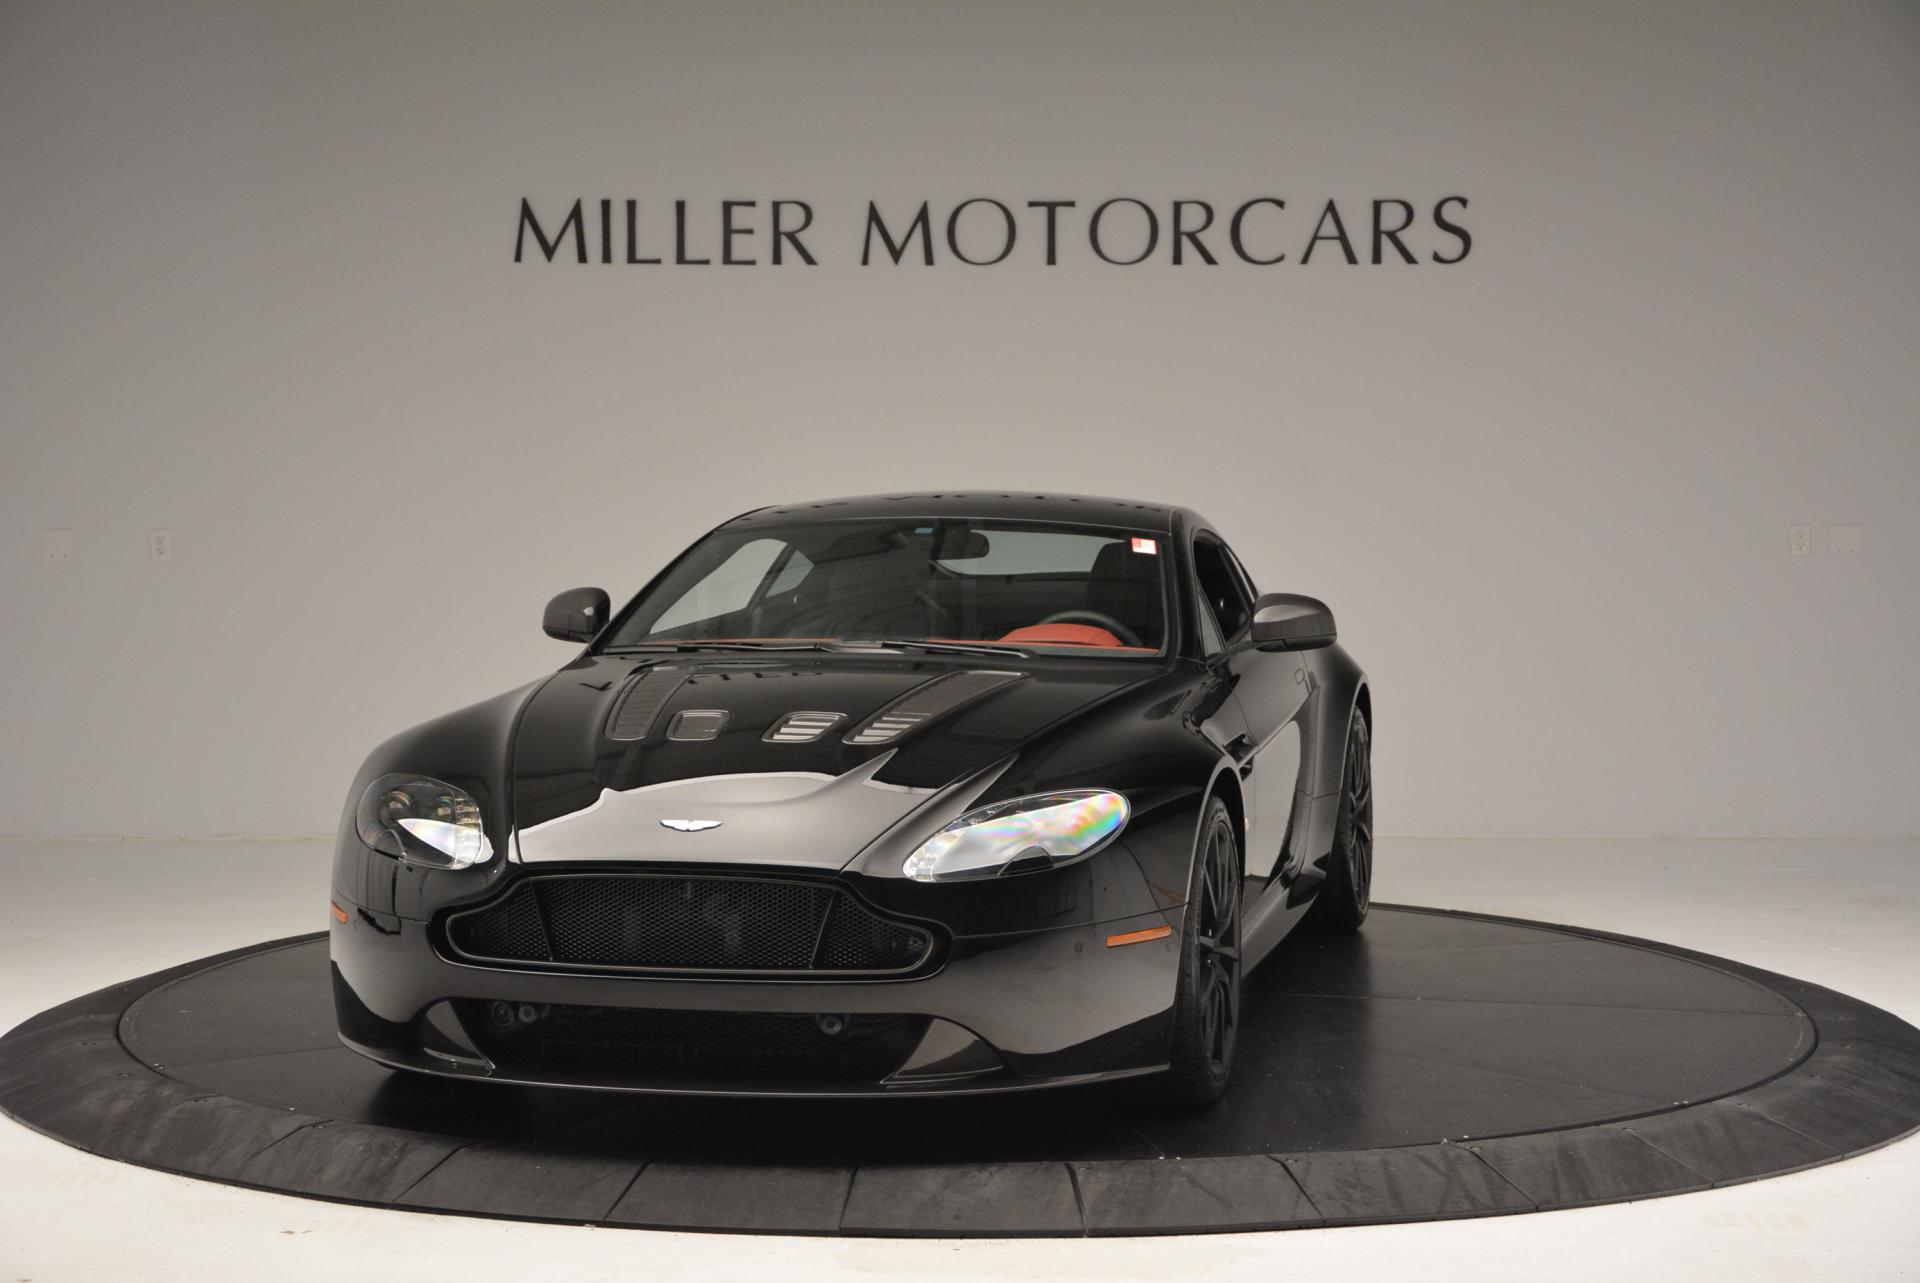 New 2015 Aston Martin V12 Vantage S for sale Sold at Alfa Romeo of Westport in Westport CT 06880 1